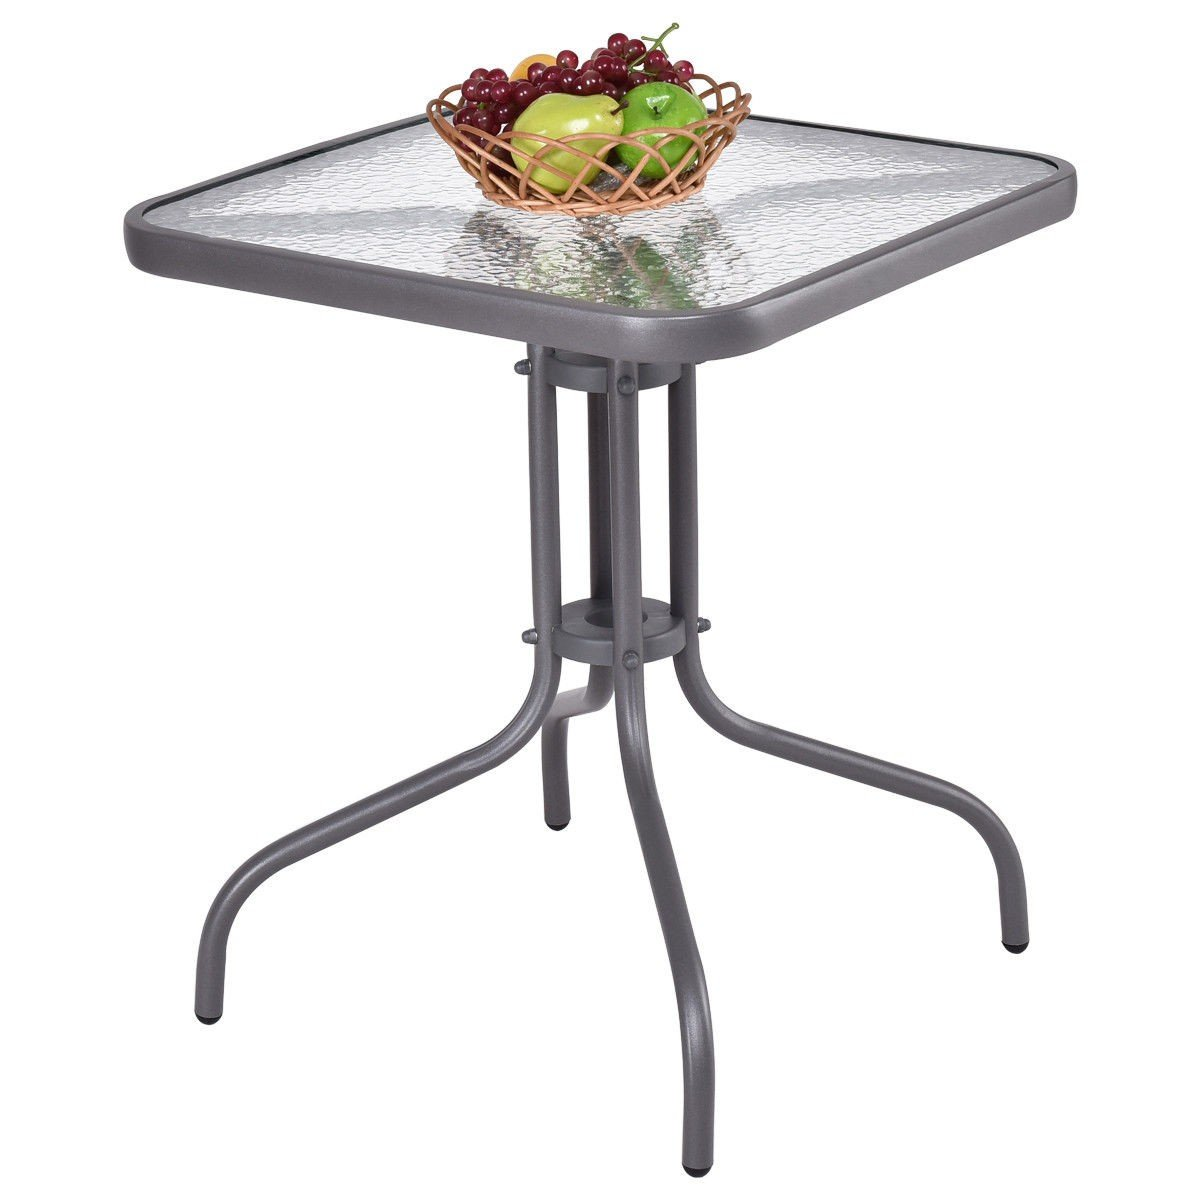 Custpromo 24'' Outdoor Dining Square Table Patio Bistro Table Tempered Glass Top Gray Steel Frame Garden Backyard Furniture